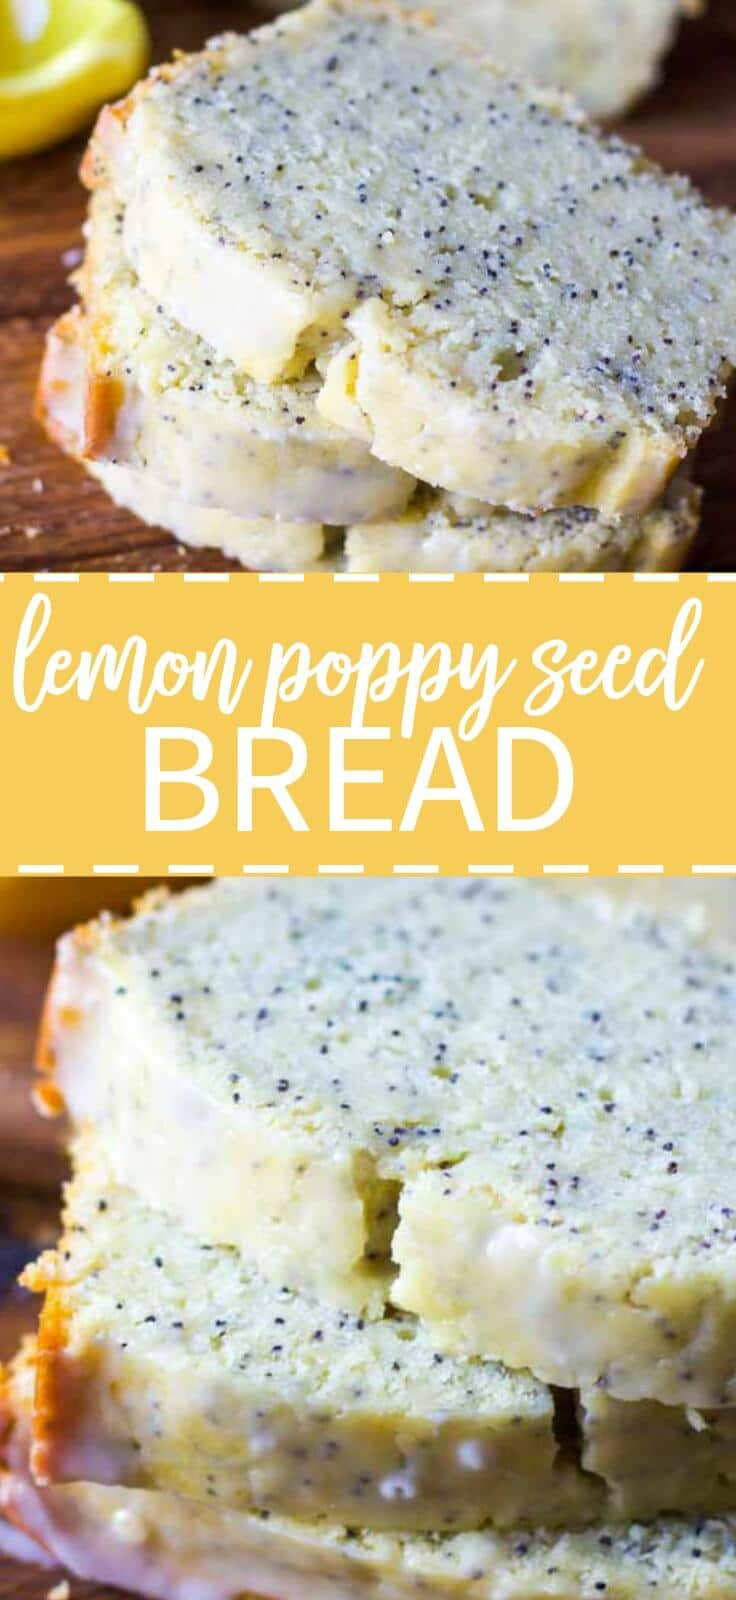 Light and zesty lemon poppy seed bread that's moist and lightly sweet made for brunch or dessert this spring!